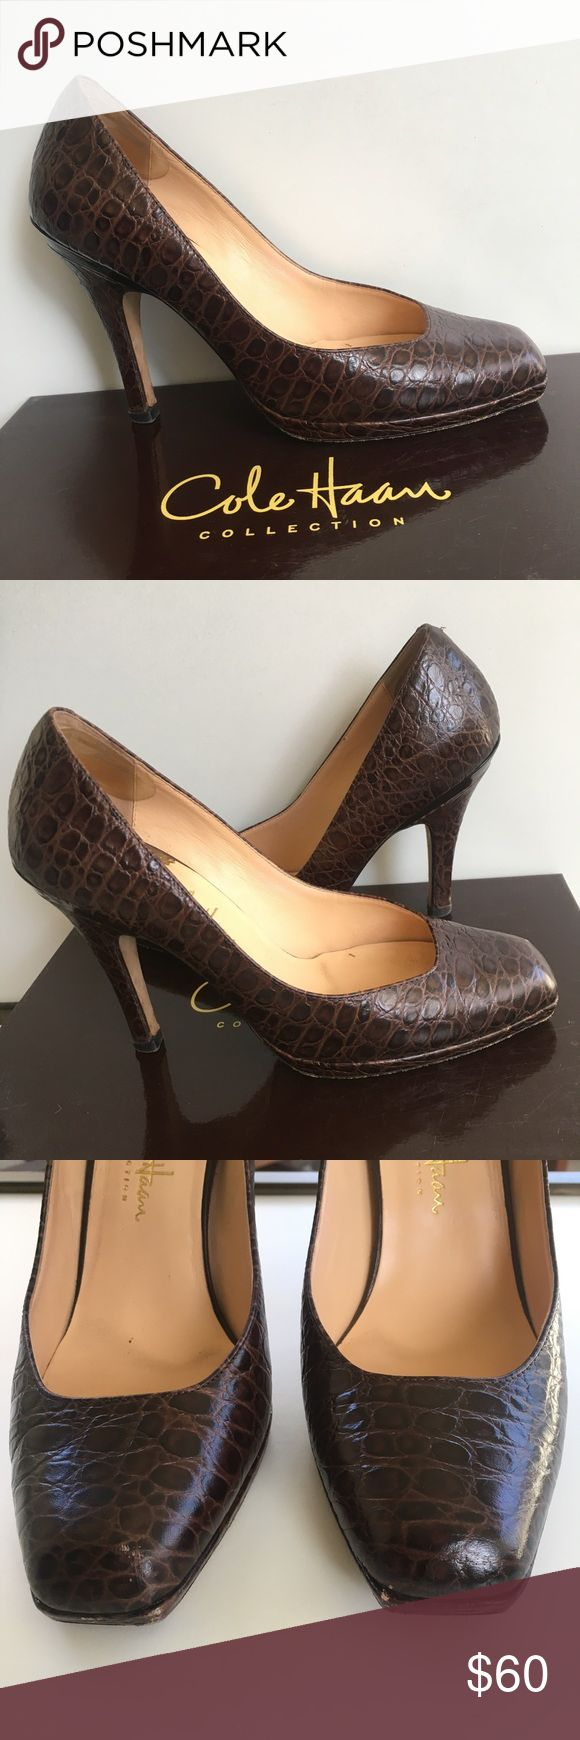 Cole Haan Nike Air Carma Pumps - Size 6.5 Cole Haan Nike Air Carma pumps in chocolate croc print, size 6.5. Good used condition; normal wear on bottom, heel and toe as shown in pictures. Cole Haan Shoes Heels